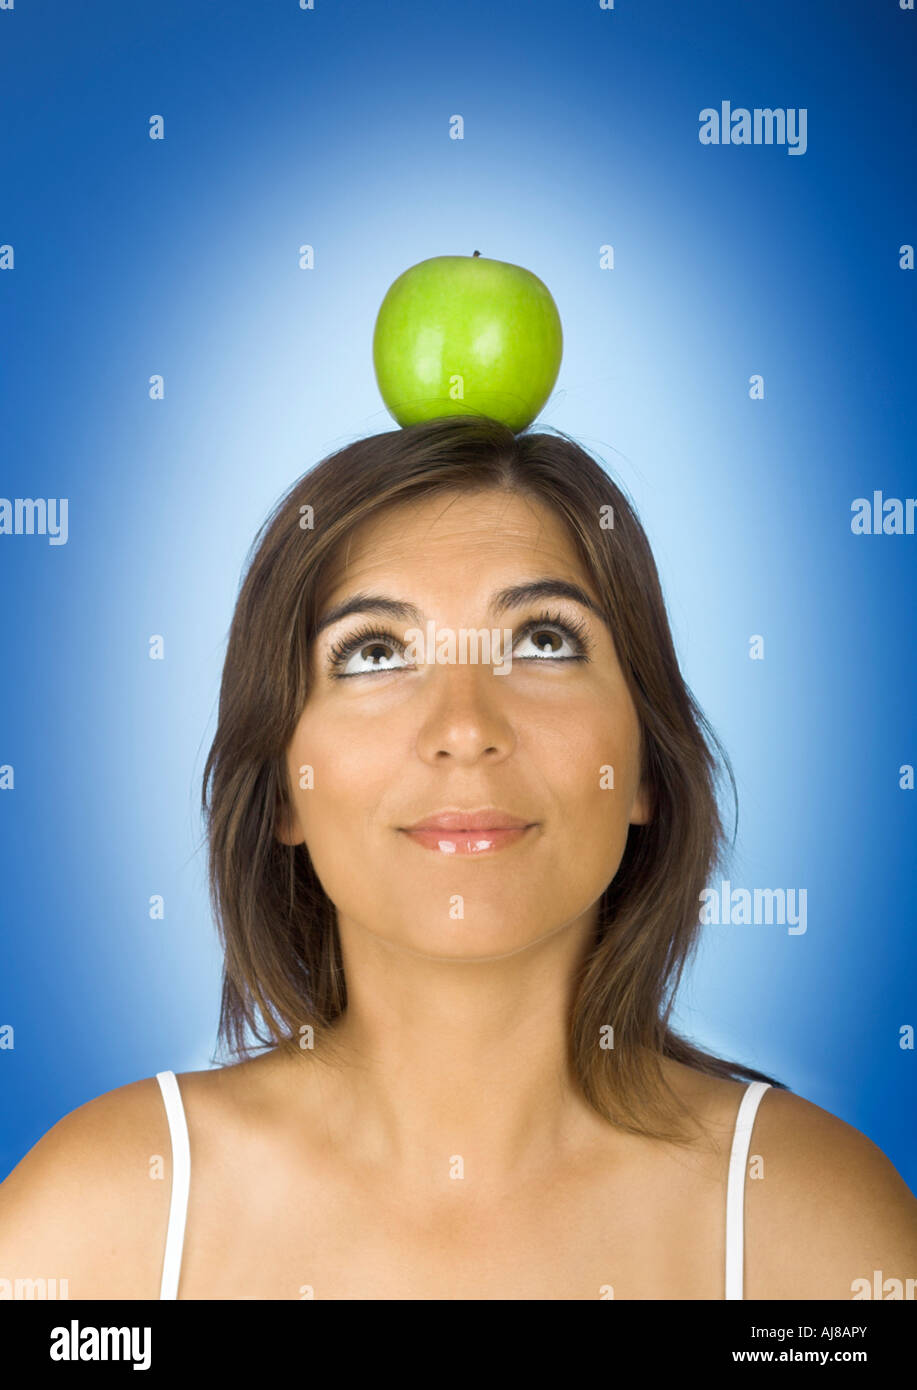 Portrait of a young woman with a apple on the head - Stock Image